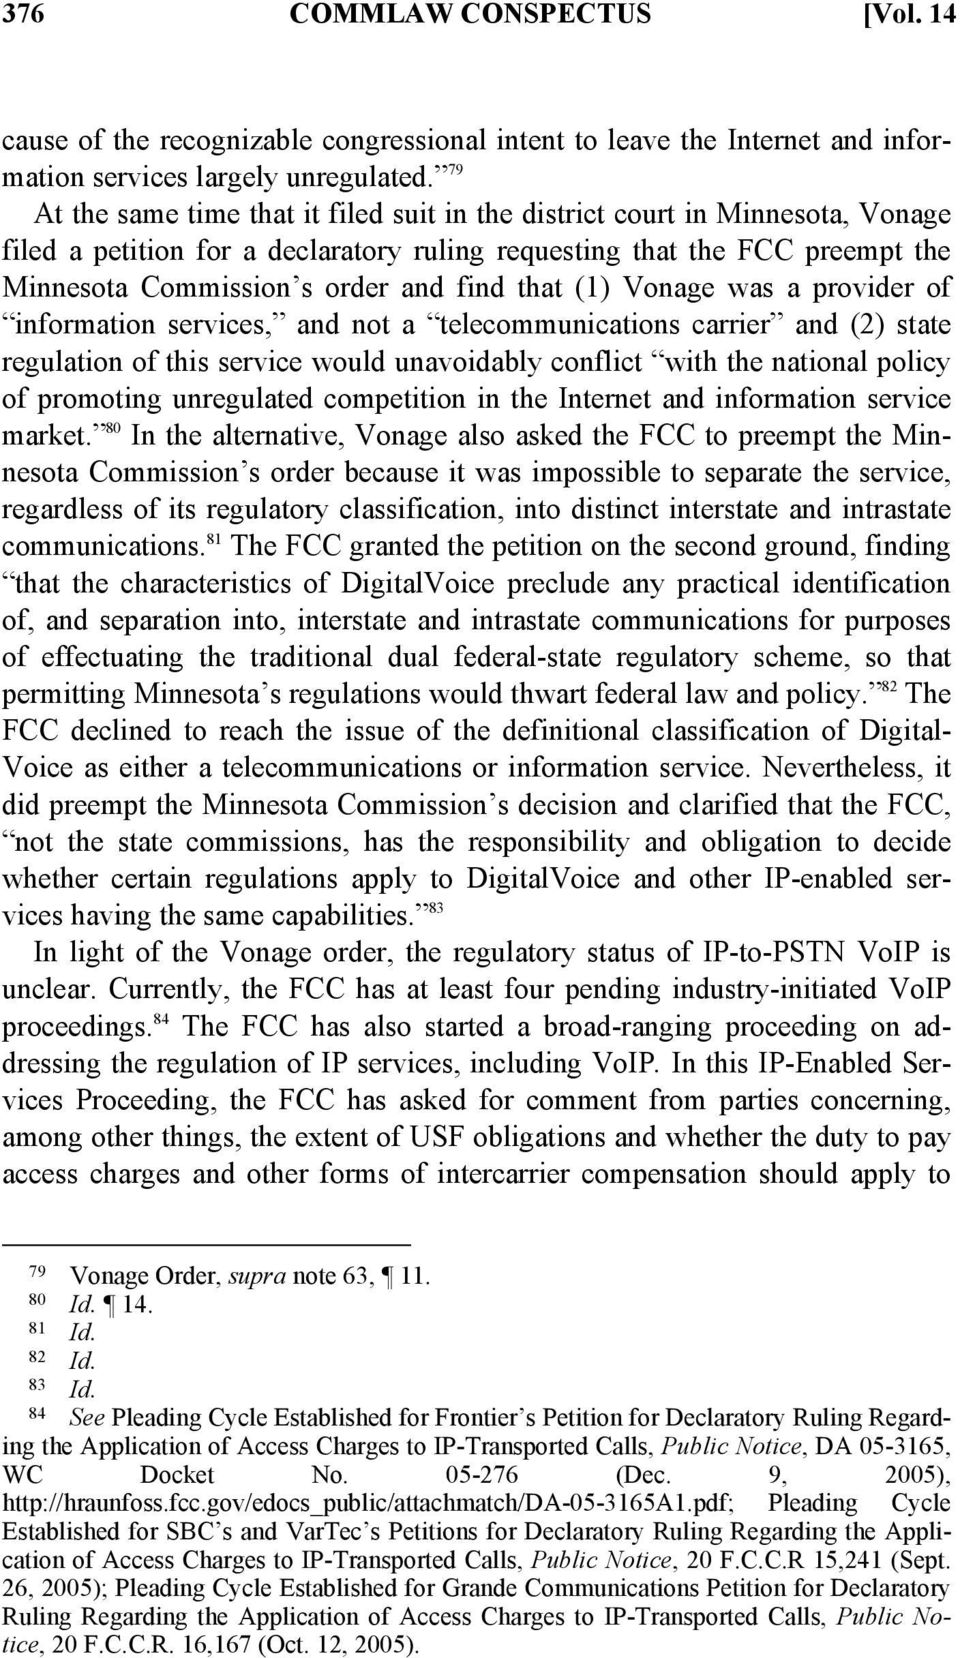 that (1) Vonage was a provider of information services, and not a telecommunications carrier and (2) state regulation of this service would unavoidably conflict with the national policy of promoting